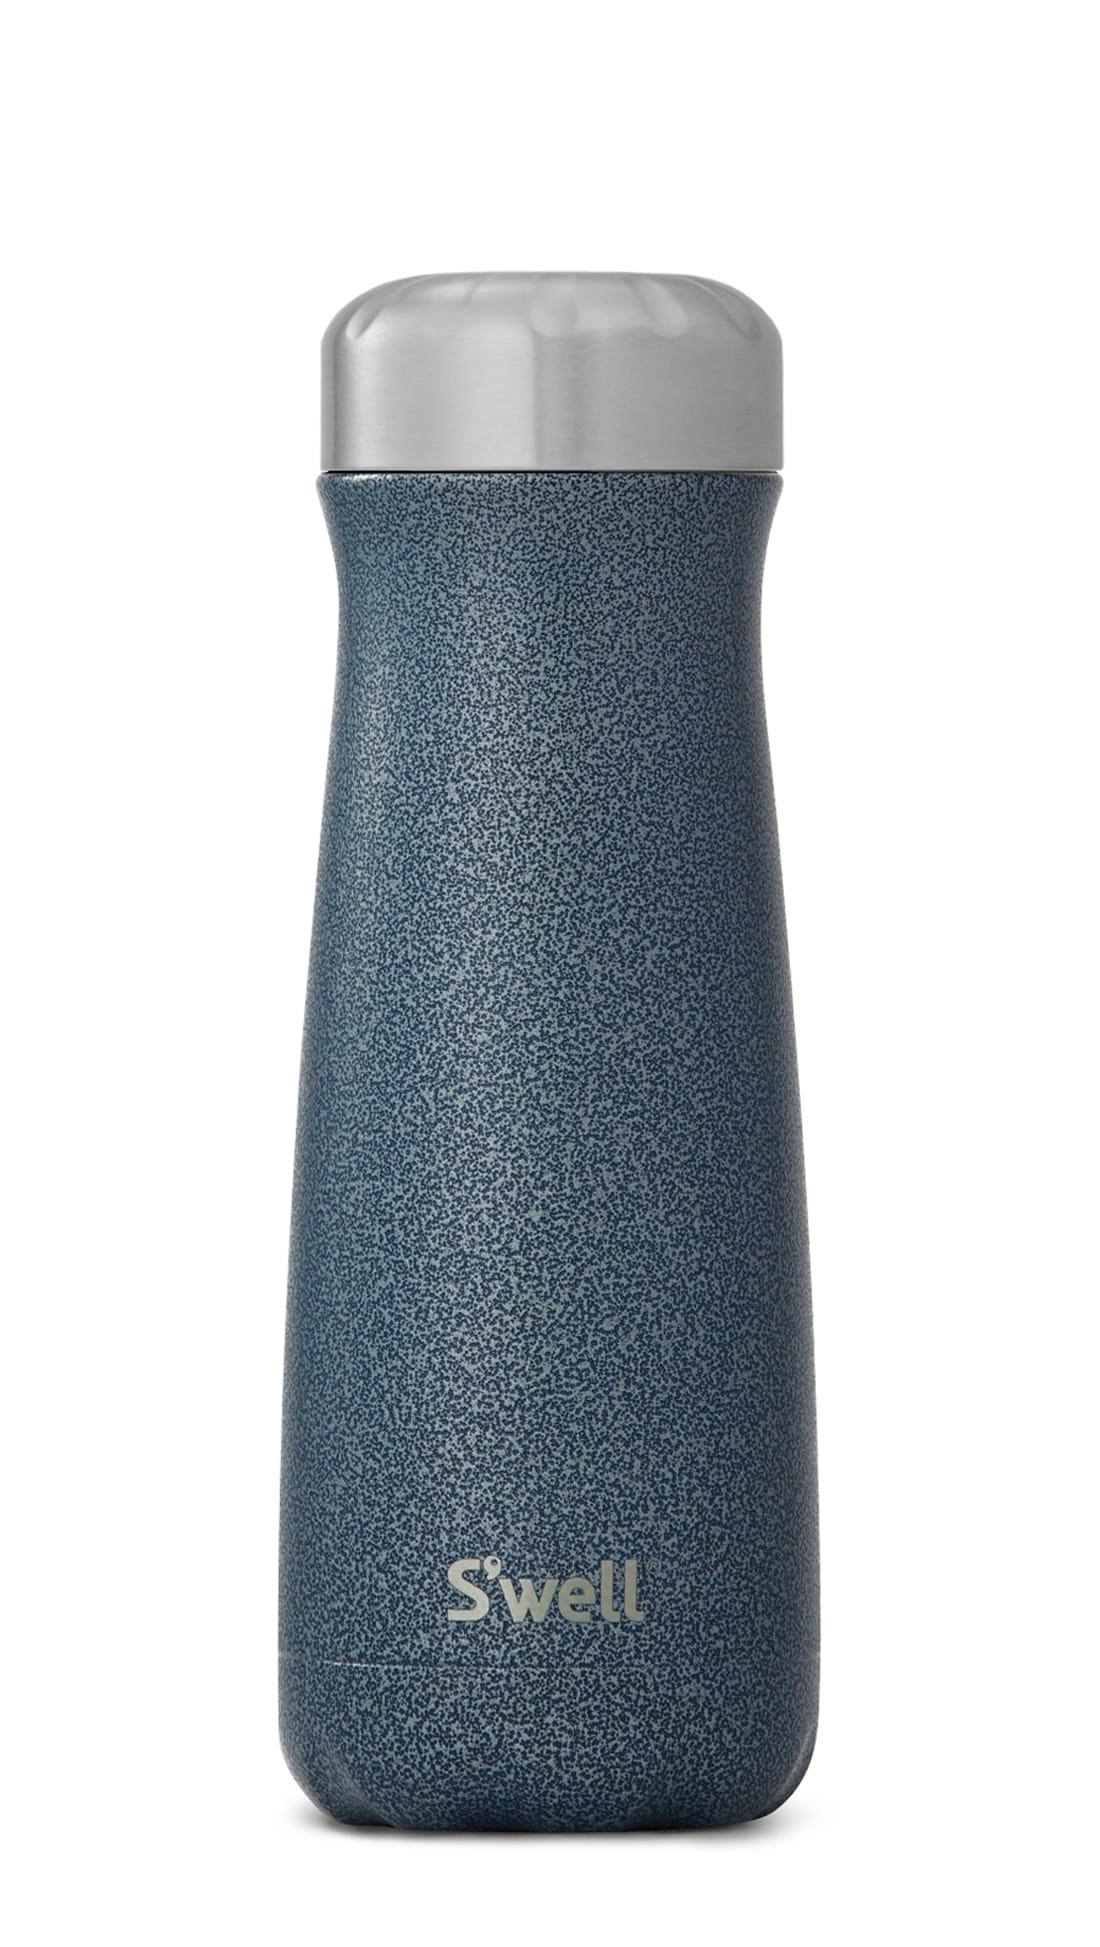 S'well Stainless Steel Travel Mug, 20 oz, Night Sky